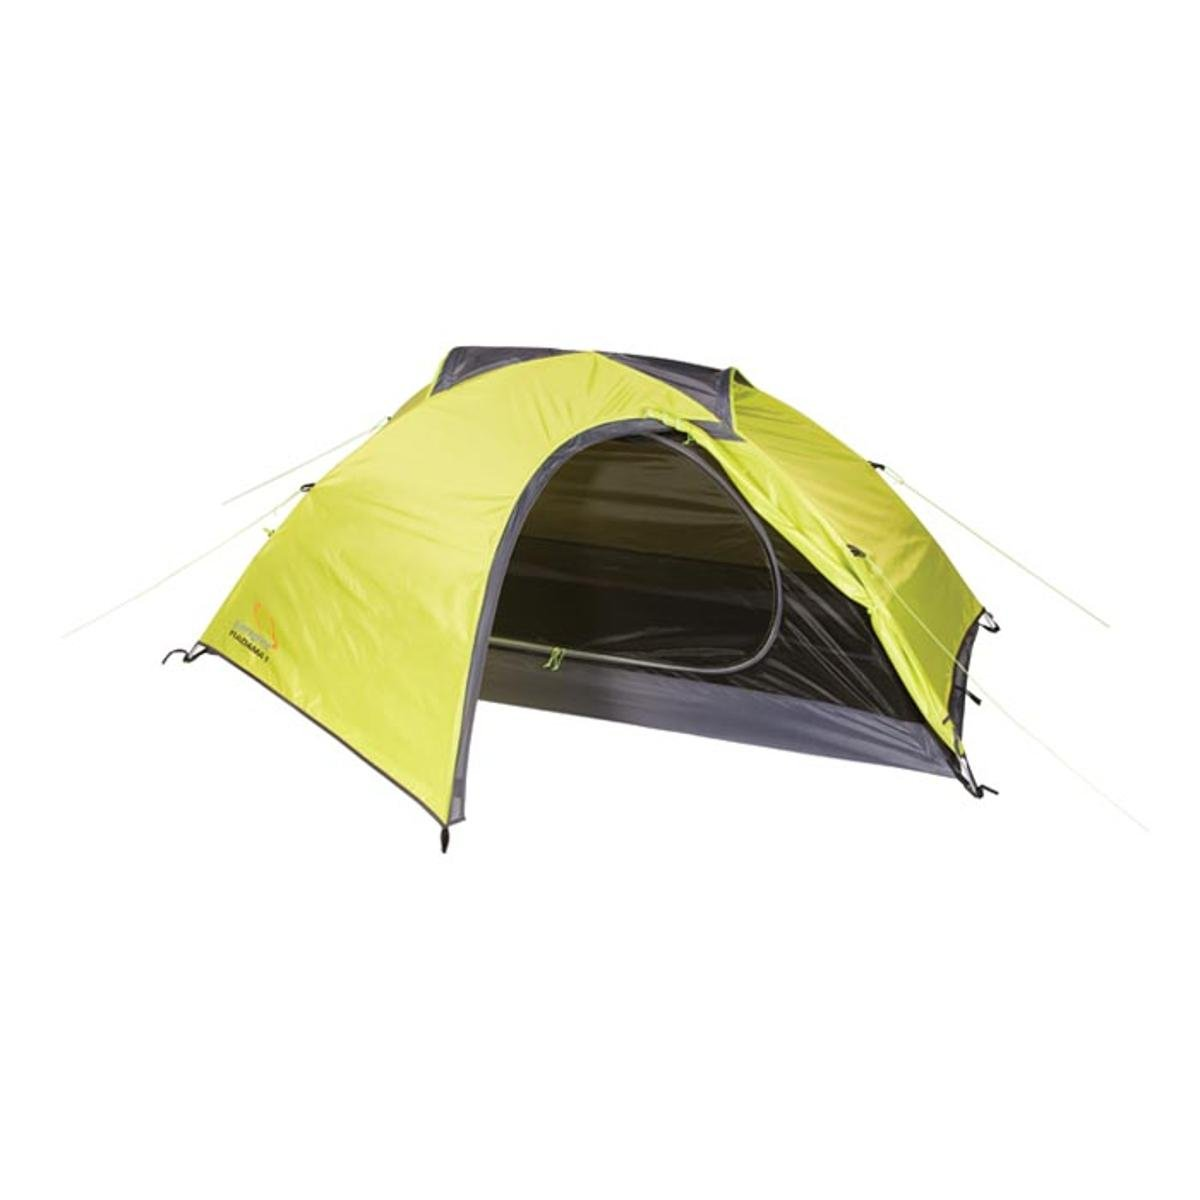 4. Peregrine Radama 1 Person Tent